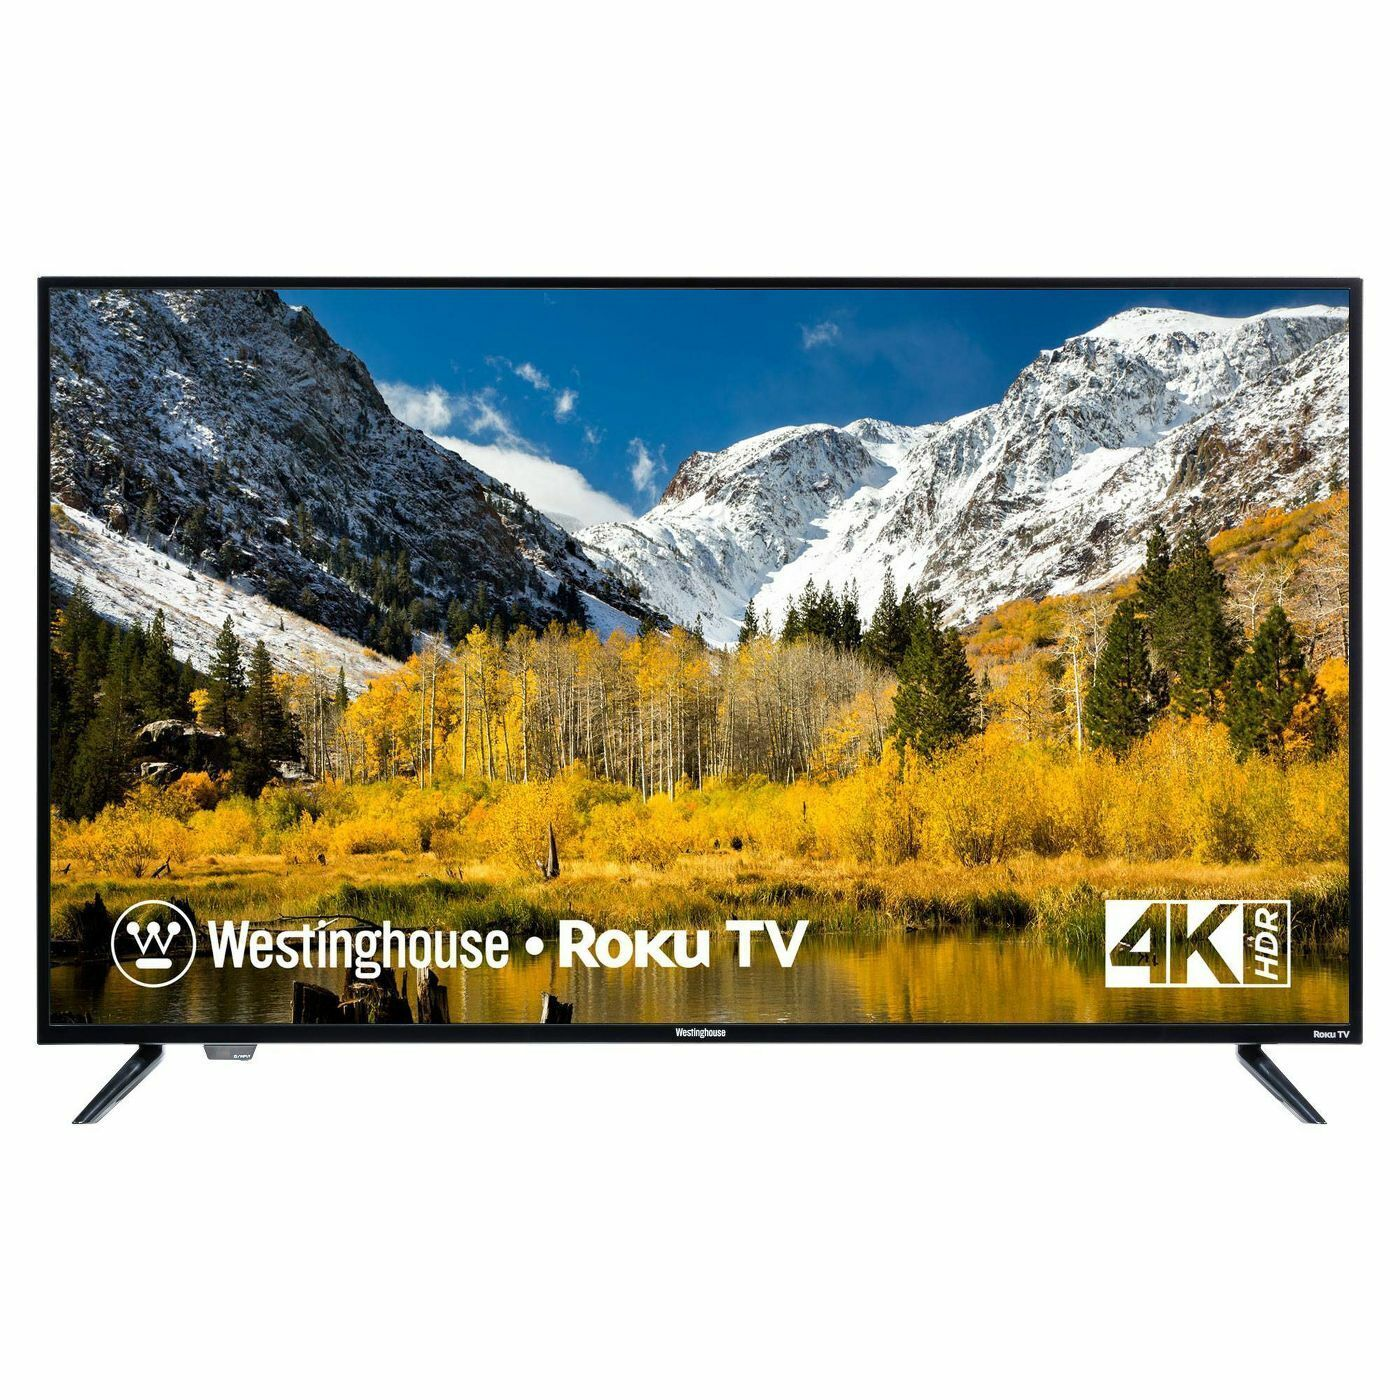 """Westinghouse 43"""" 4K Ultra HD Roku Smart TV with HDR (WR43UT4009) - Brand New."""